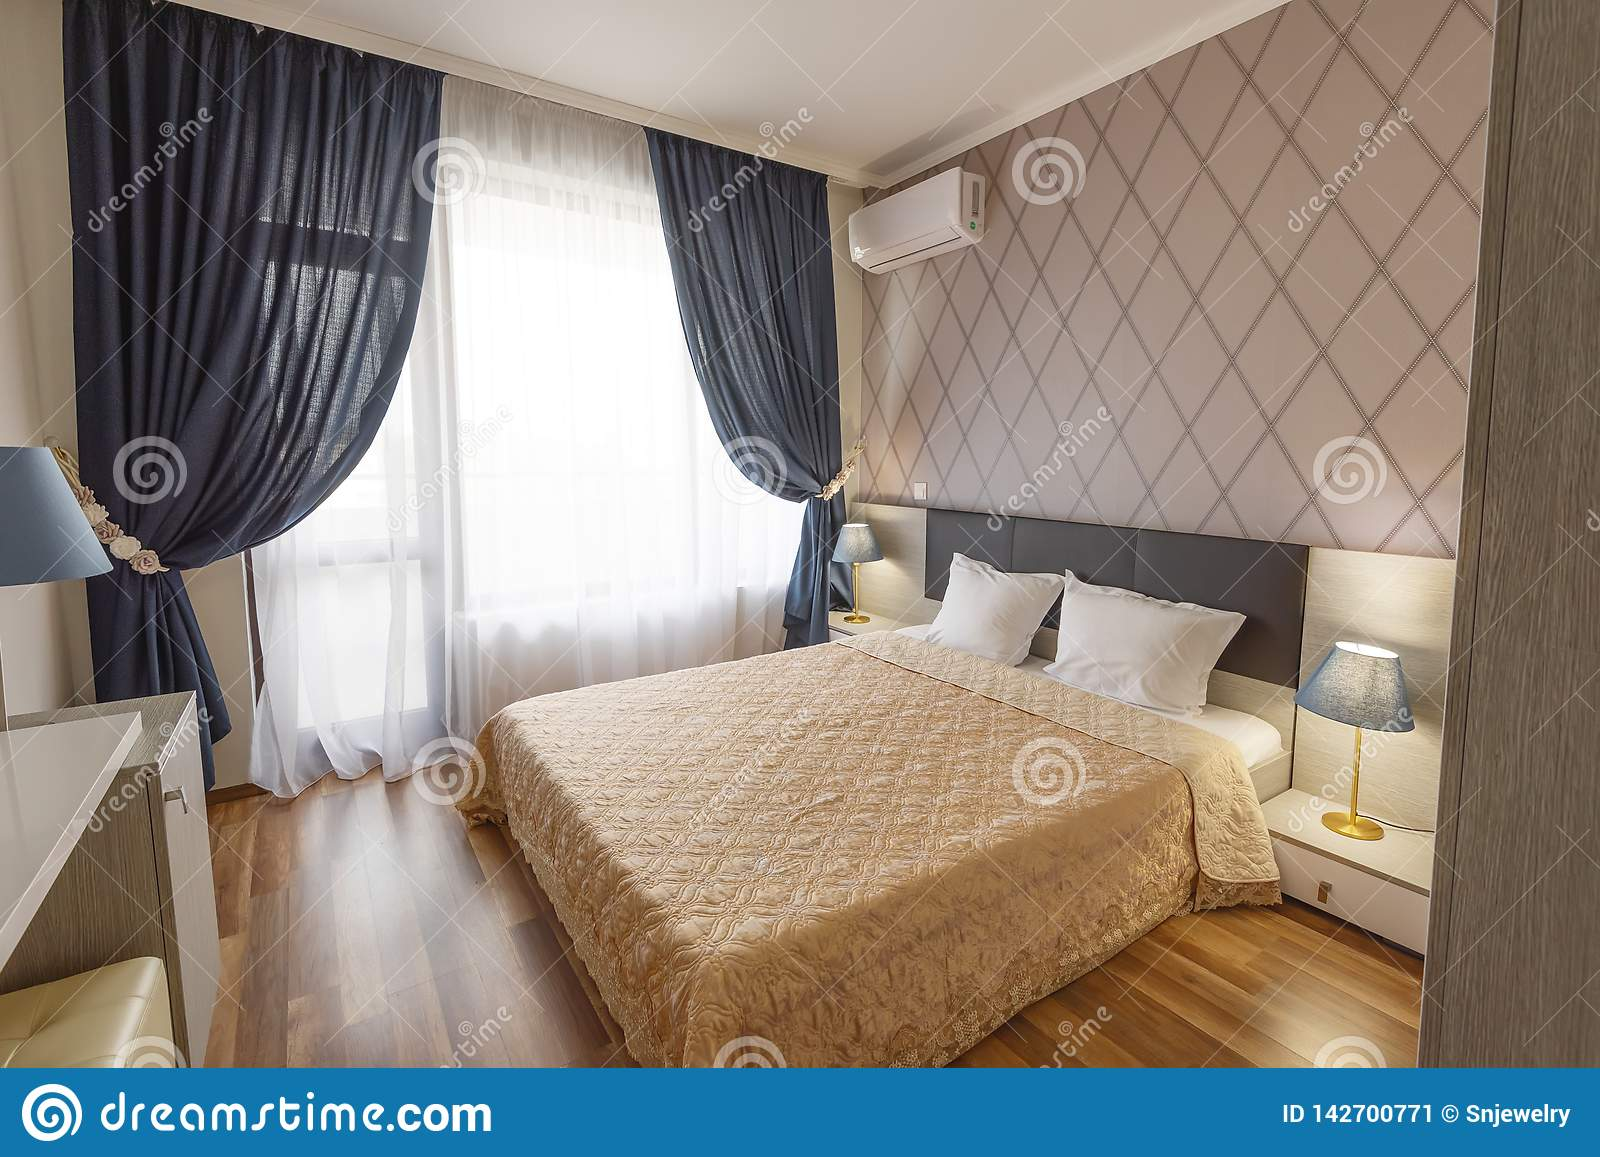 Curtains For Long Windows Interior Of Modern Bedroom With Cozy Double Bed Windows With Long